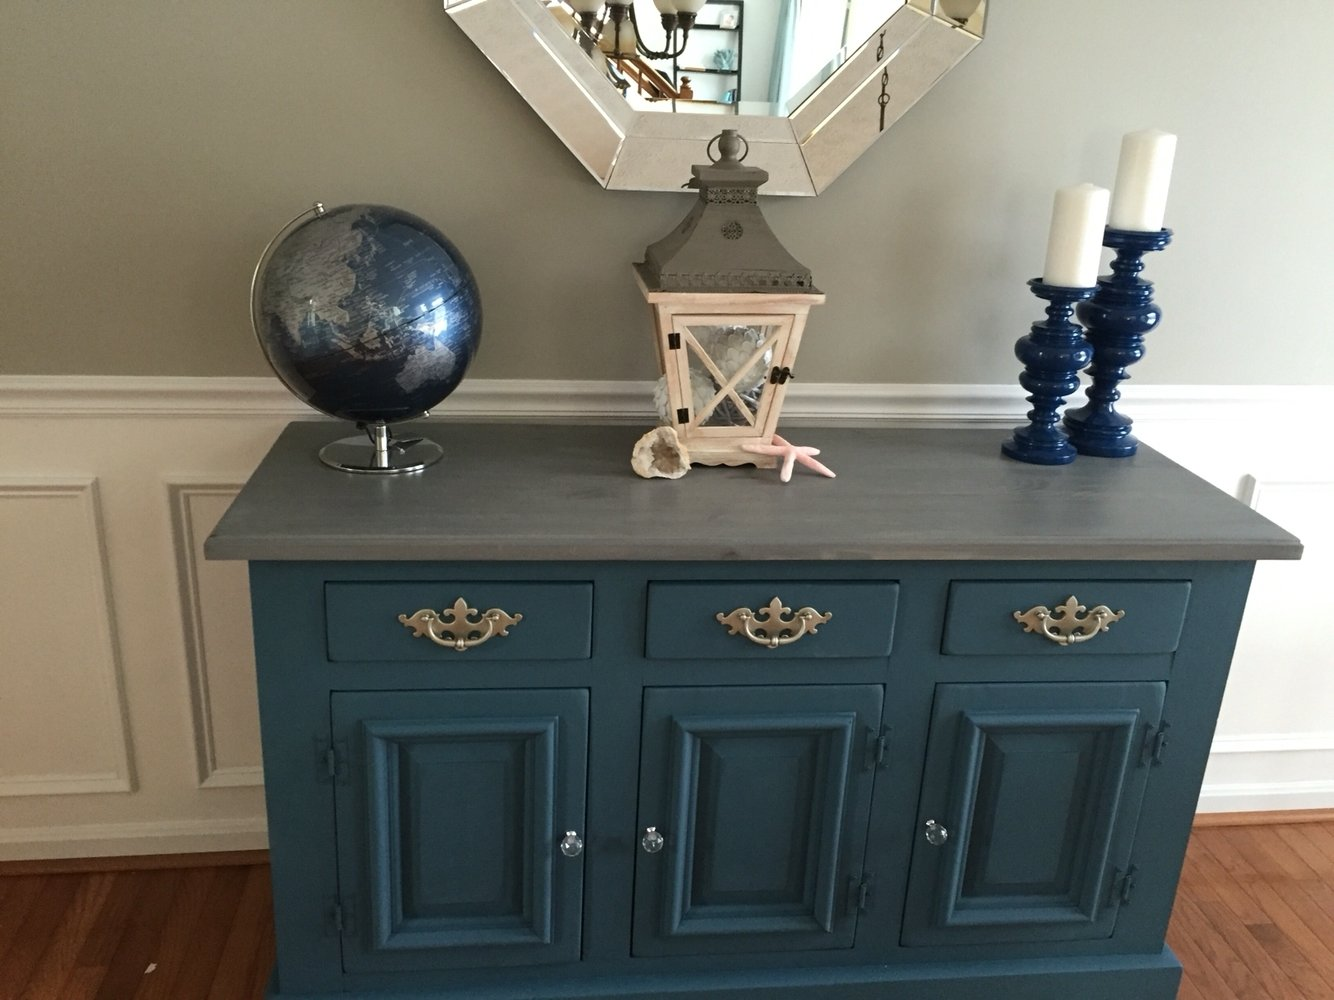 10 Pretty Annie Sloan Painted Furniture Ideas painted dining room buffet using annie sloan chalk paint aubusson 1 2020